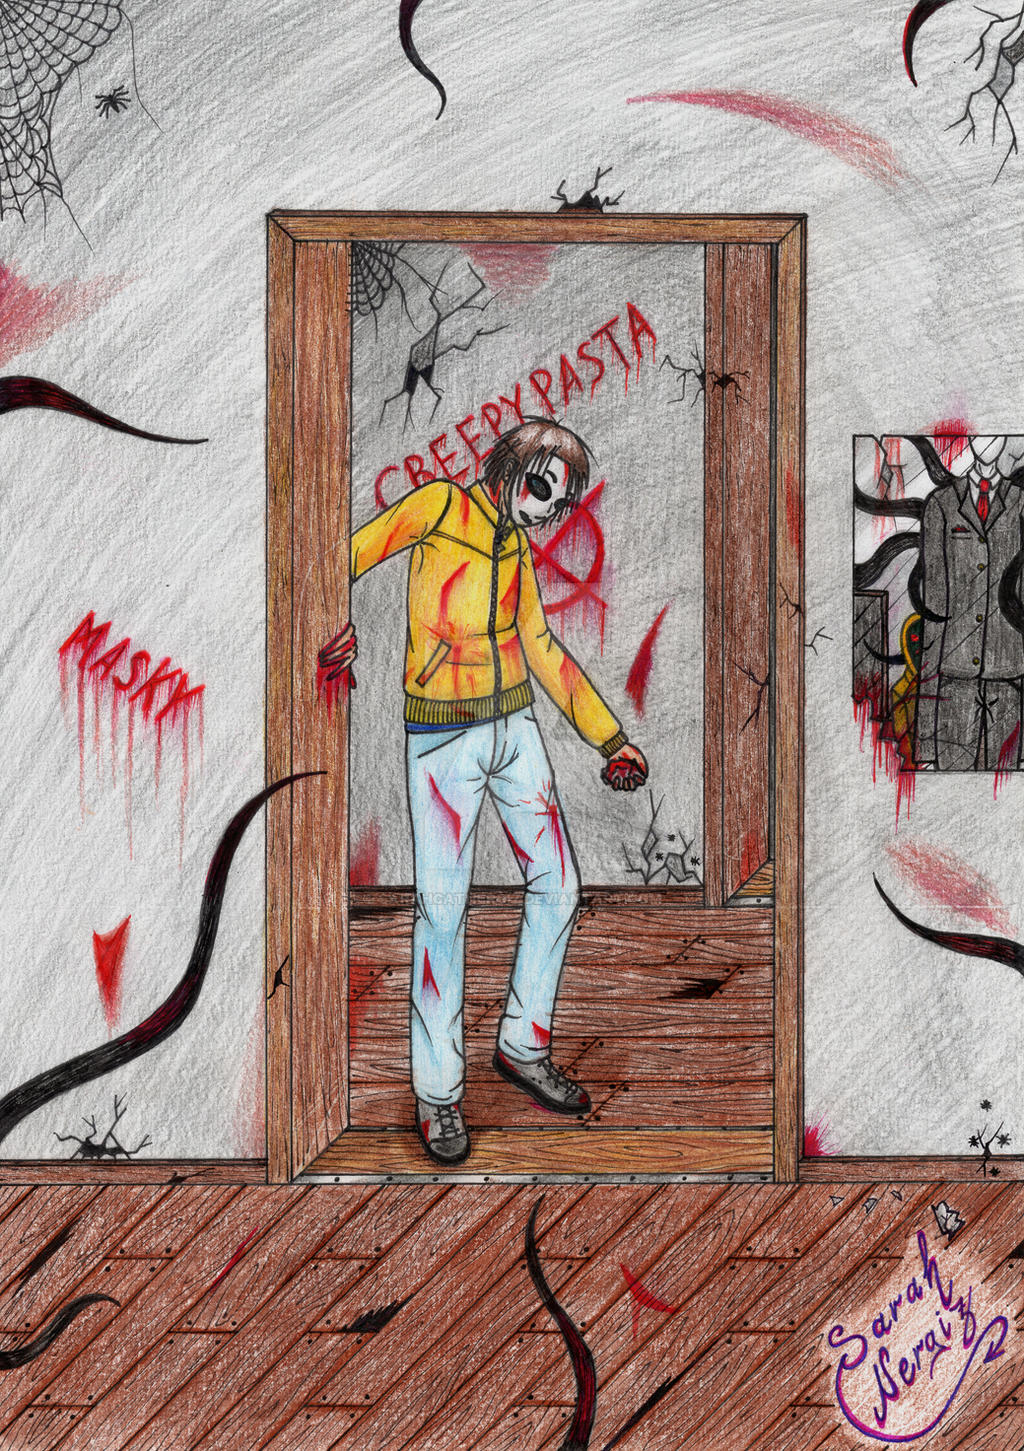 Masky Creepypasta (Marble Hornets) by SarahCatNergiz on ... | 1024 x 1451 jpeg 821kB